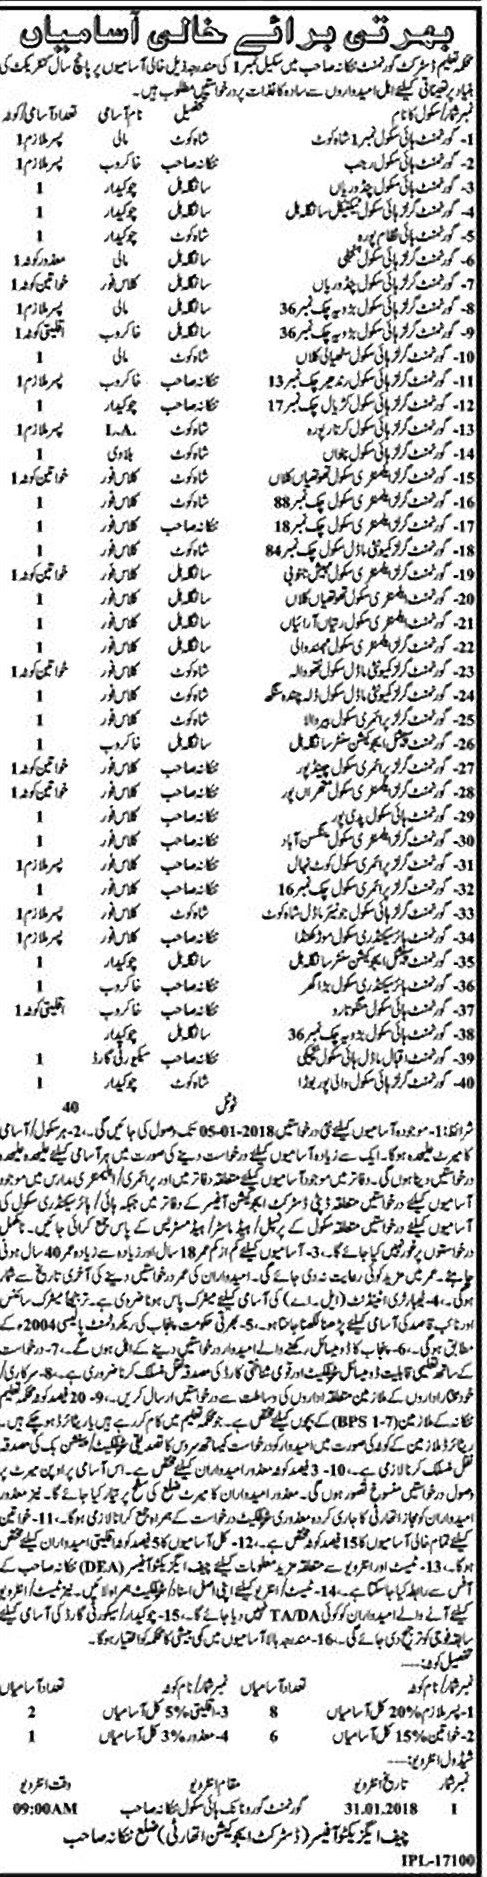 Punjab School Education Department Jobs 2017 In Nankana Sahib For Class IV And Security Guards http://www.jobsfanda.com/punjab-school-education-department-jobs-2017-nankana-sahib-class-iv-security-guards/